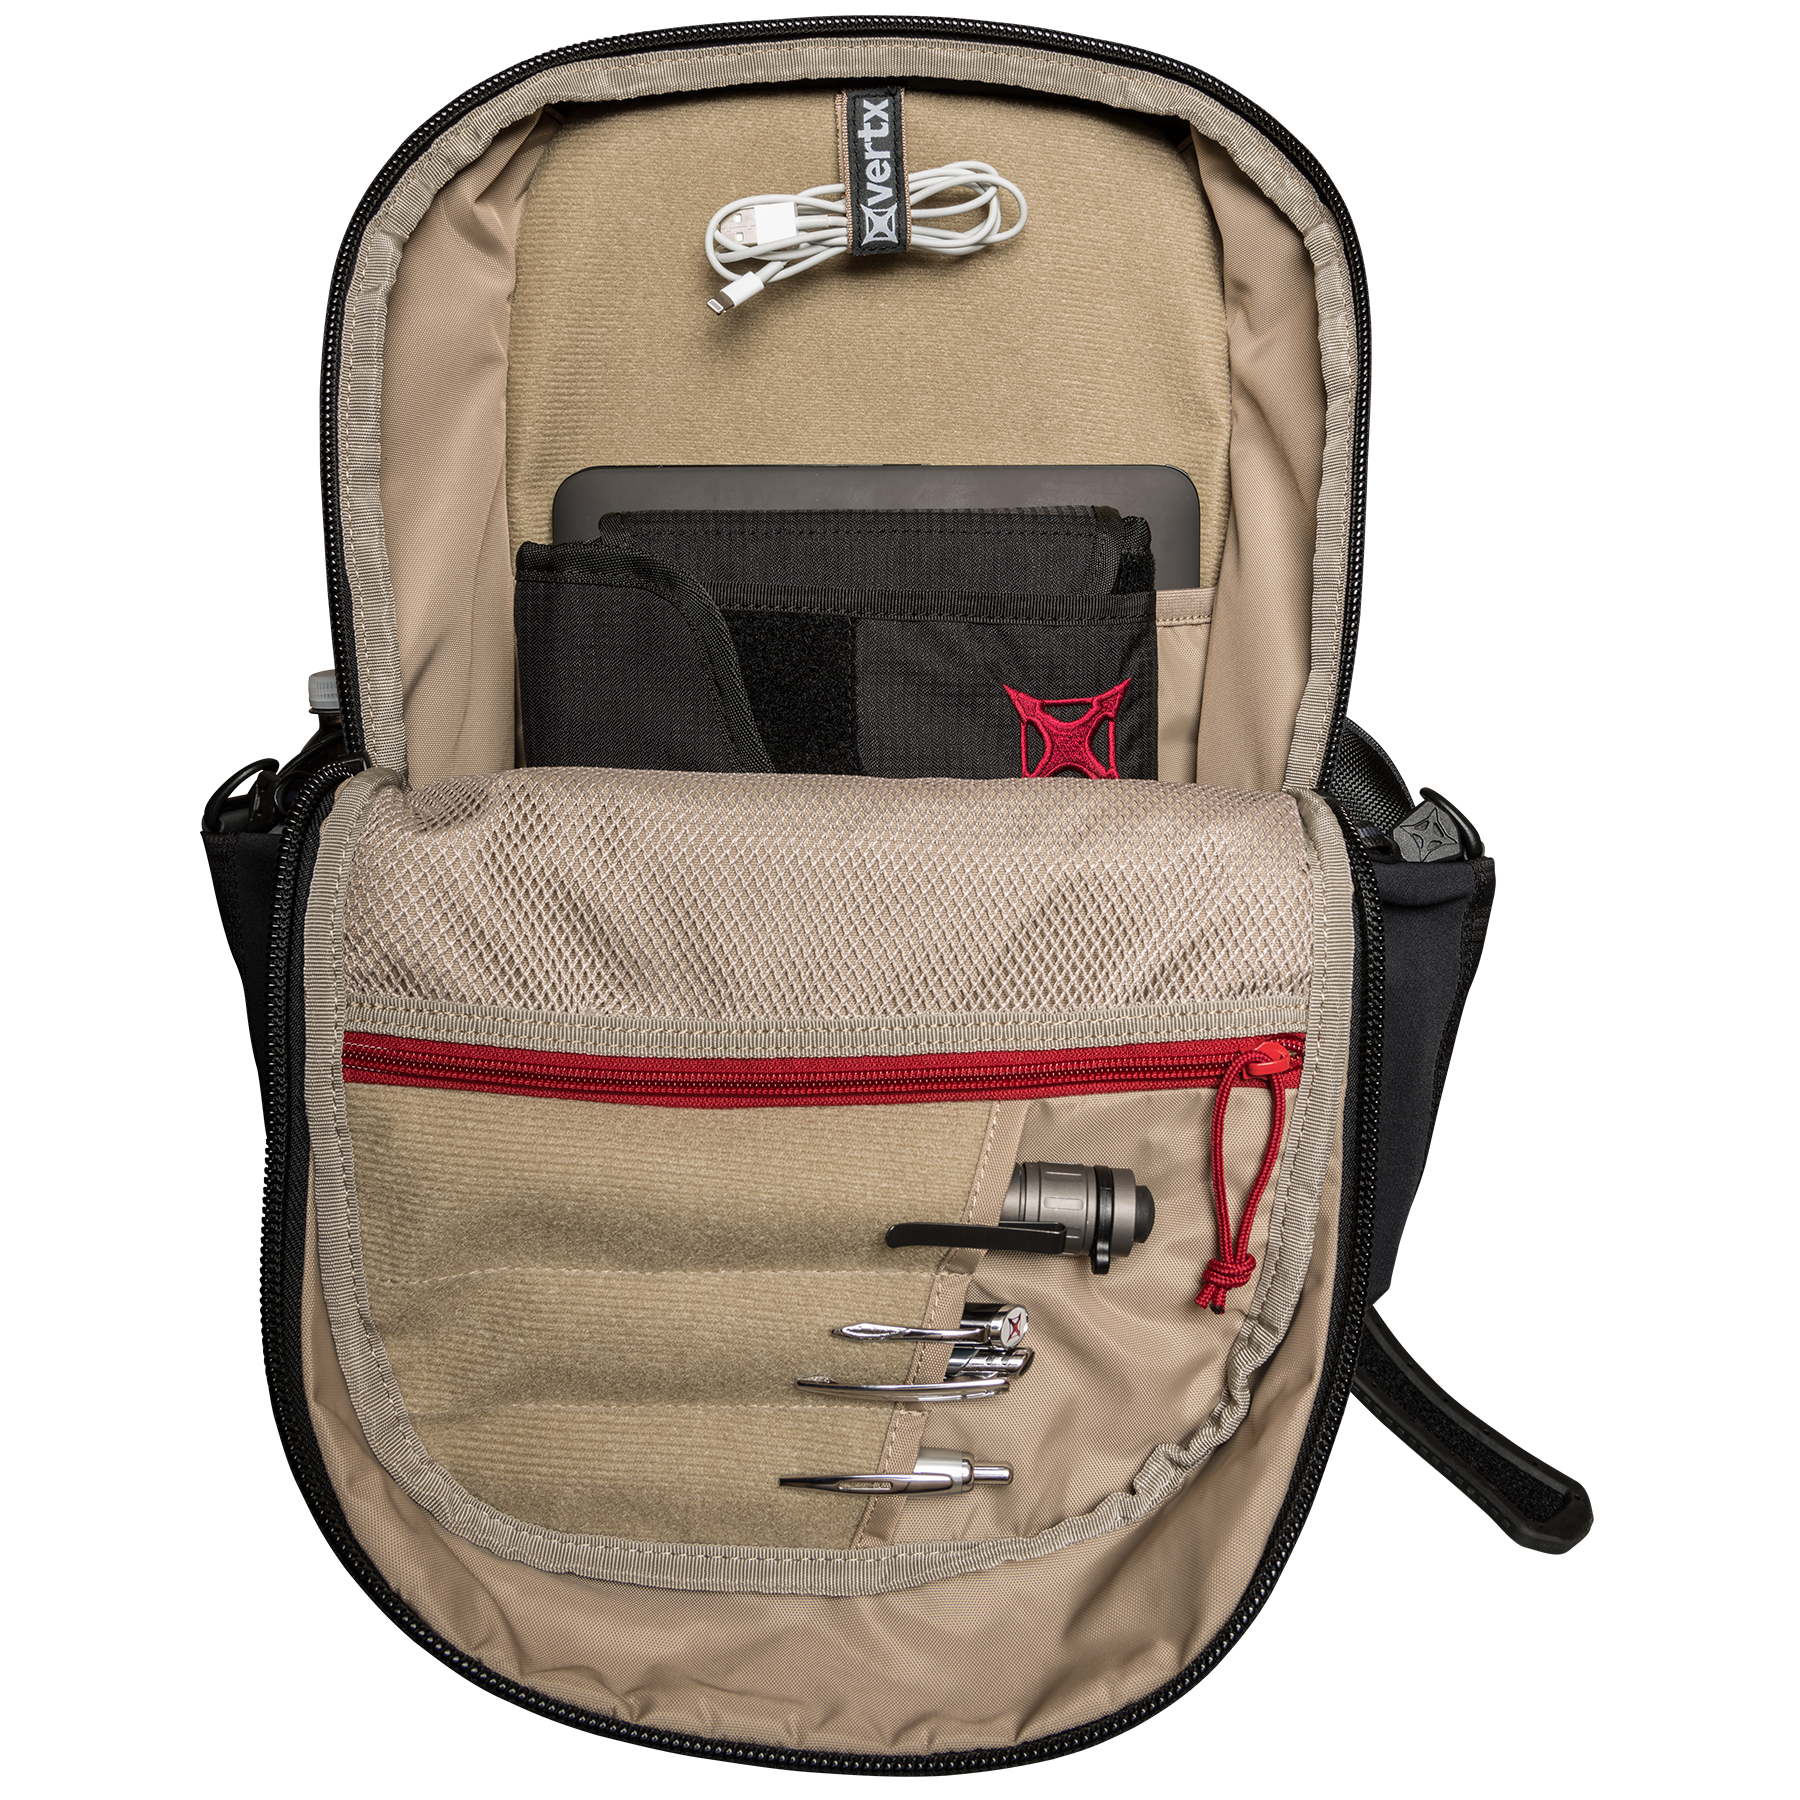 VERTX® READY BACKPACK– Concealed Carry   VERTX® EVERYDAY